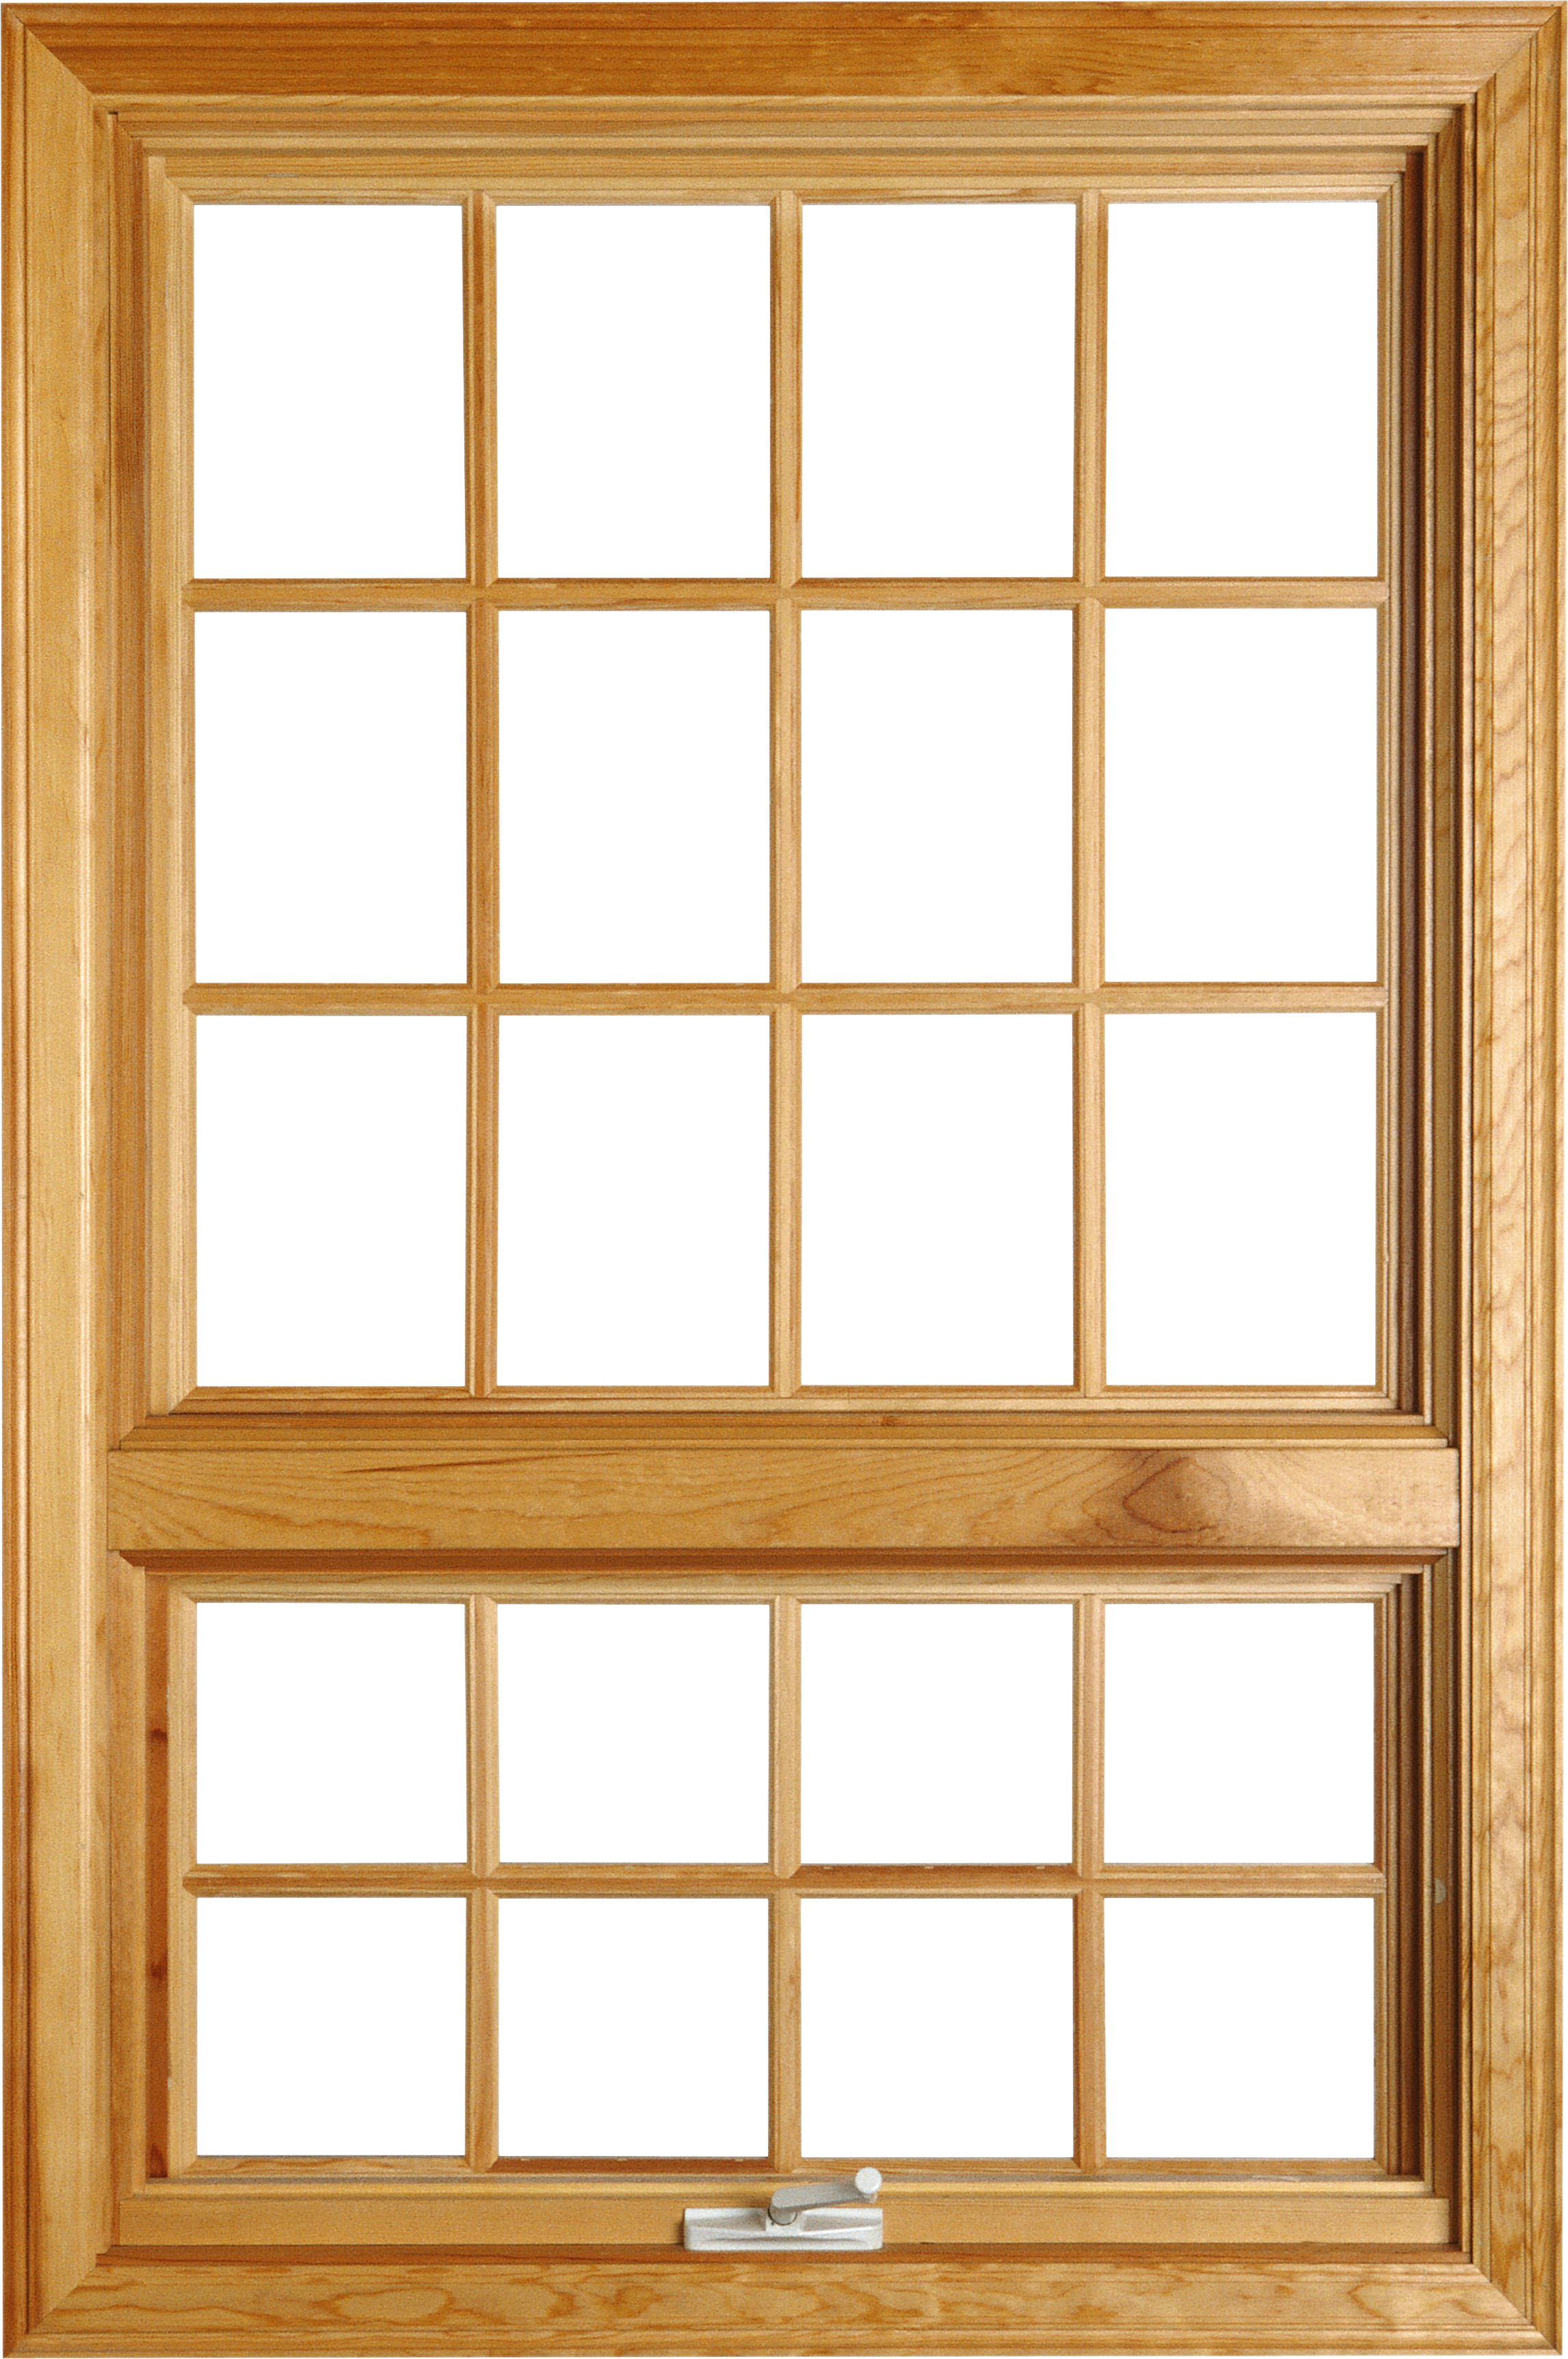 Wooden window frame png. Images free download open